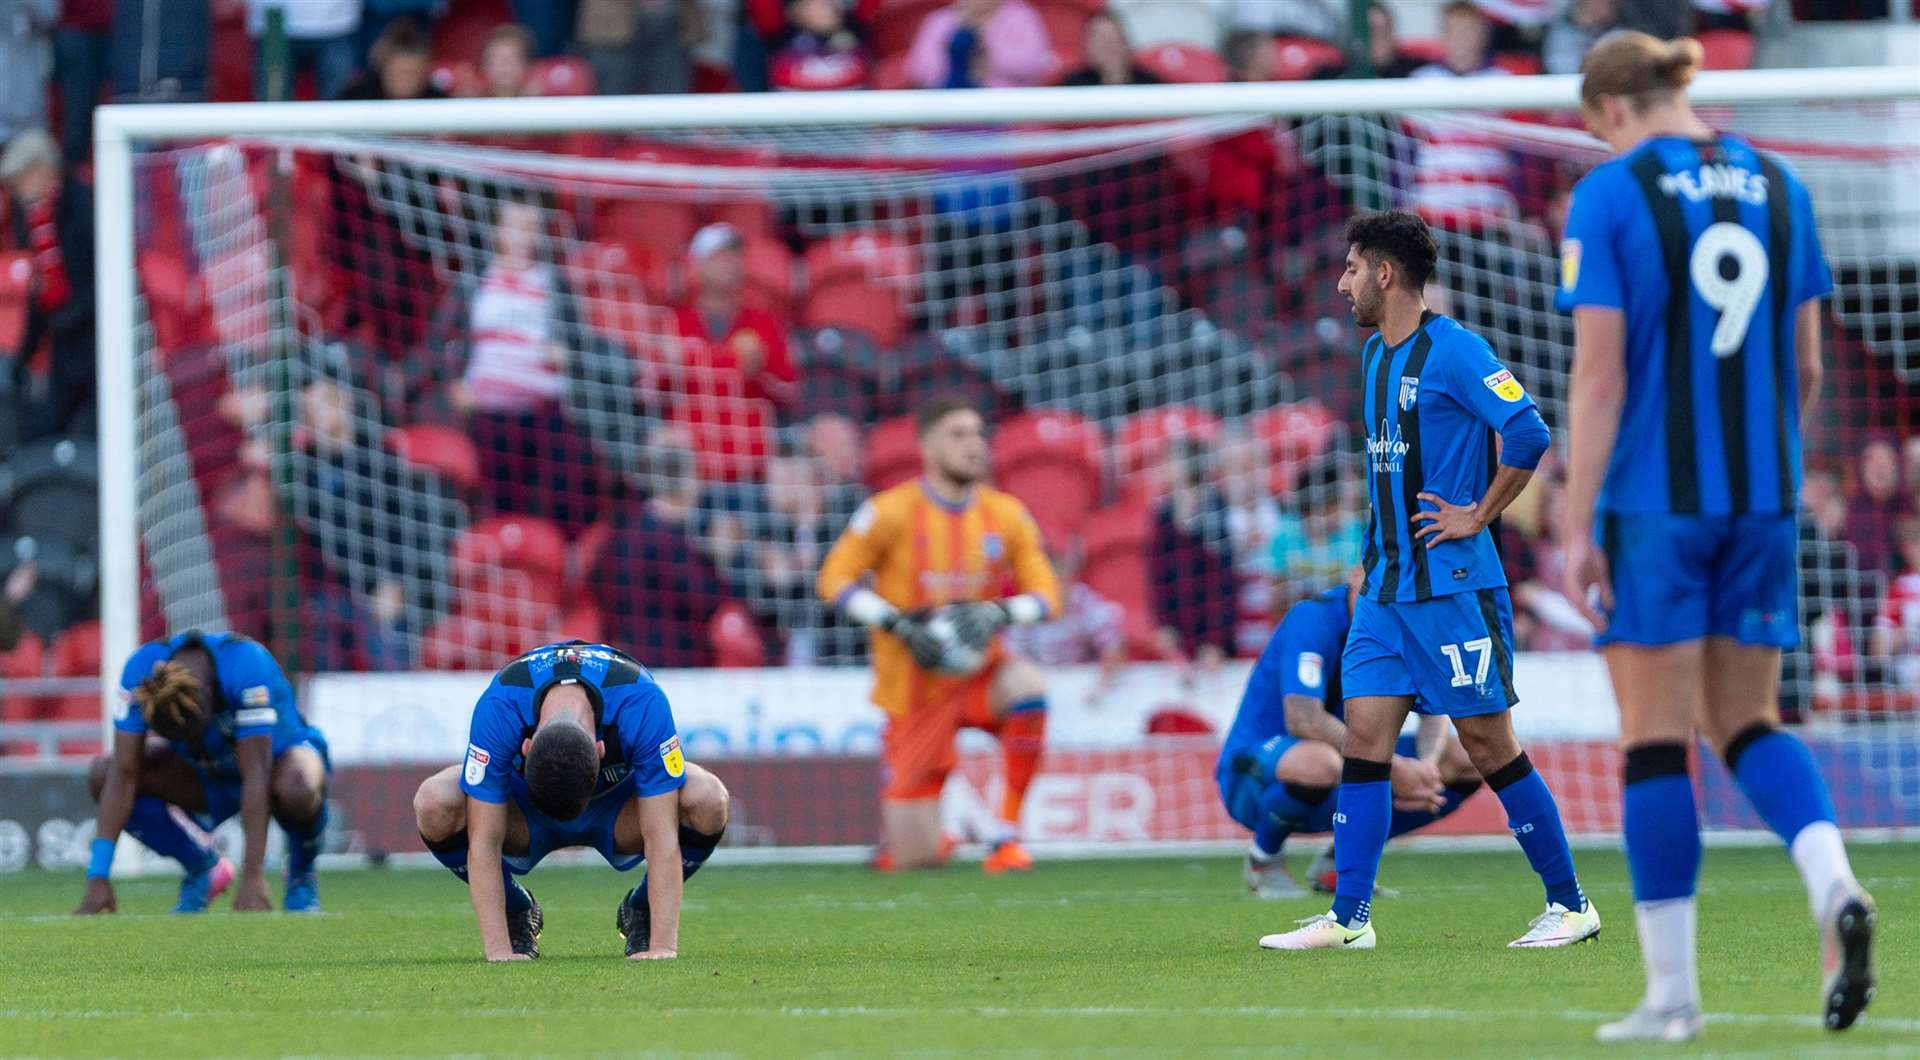 Gills players are left deflated after conceding an injury-time equaliser at Doncaster. Picture: Ady Kerry